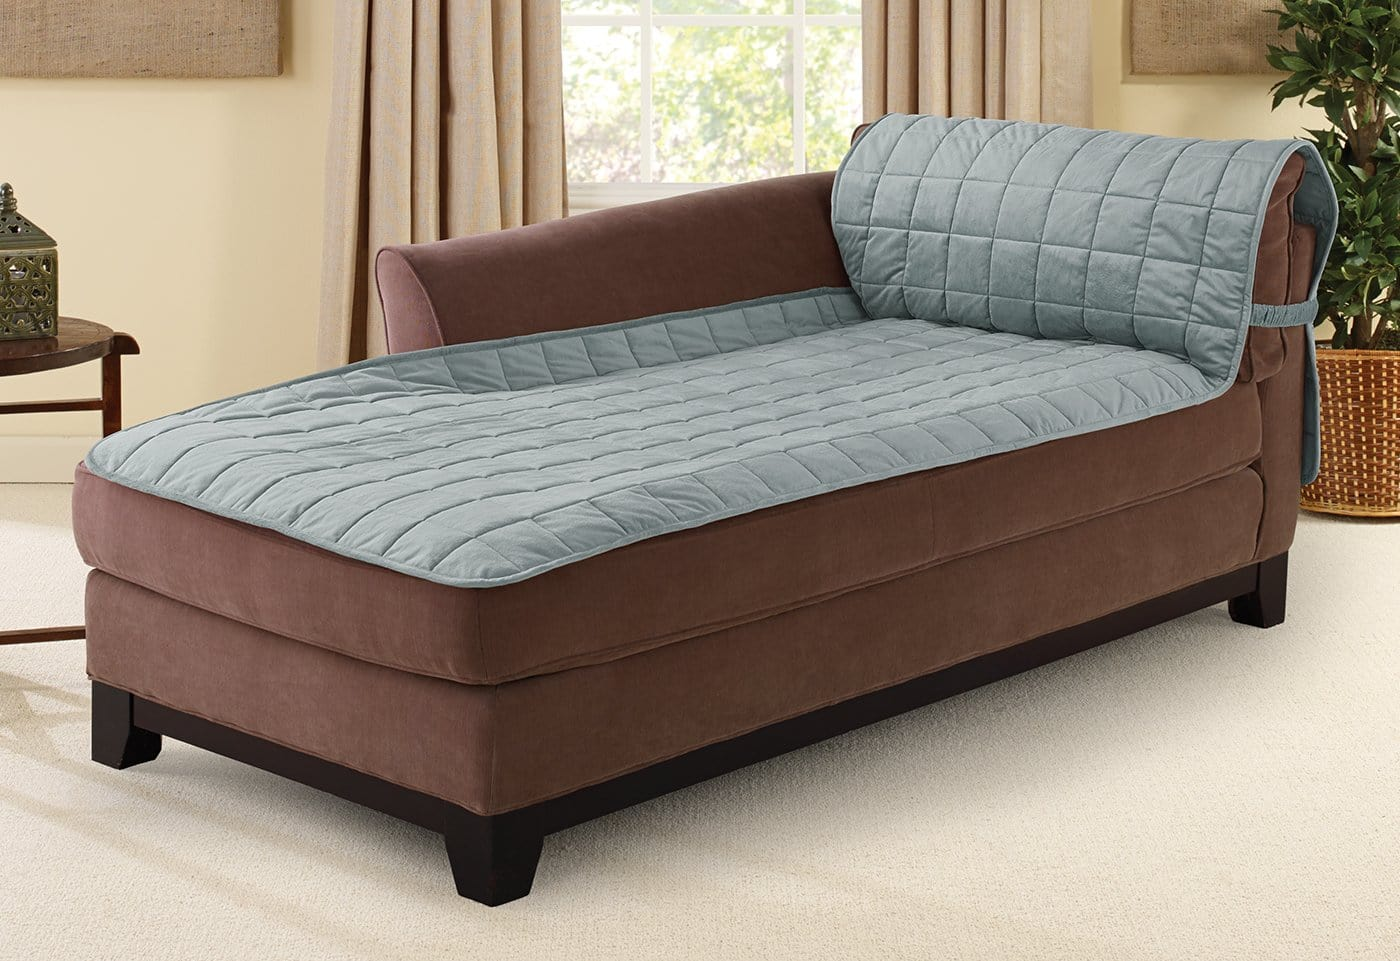 Deluxe Comfort Chaise Lounge Furniture Cover - Chaise Lounge / Mist